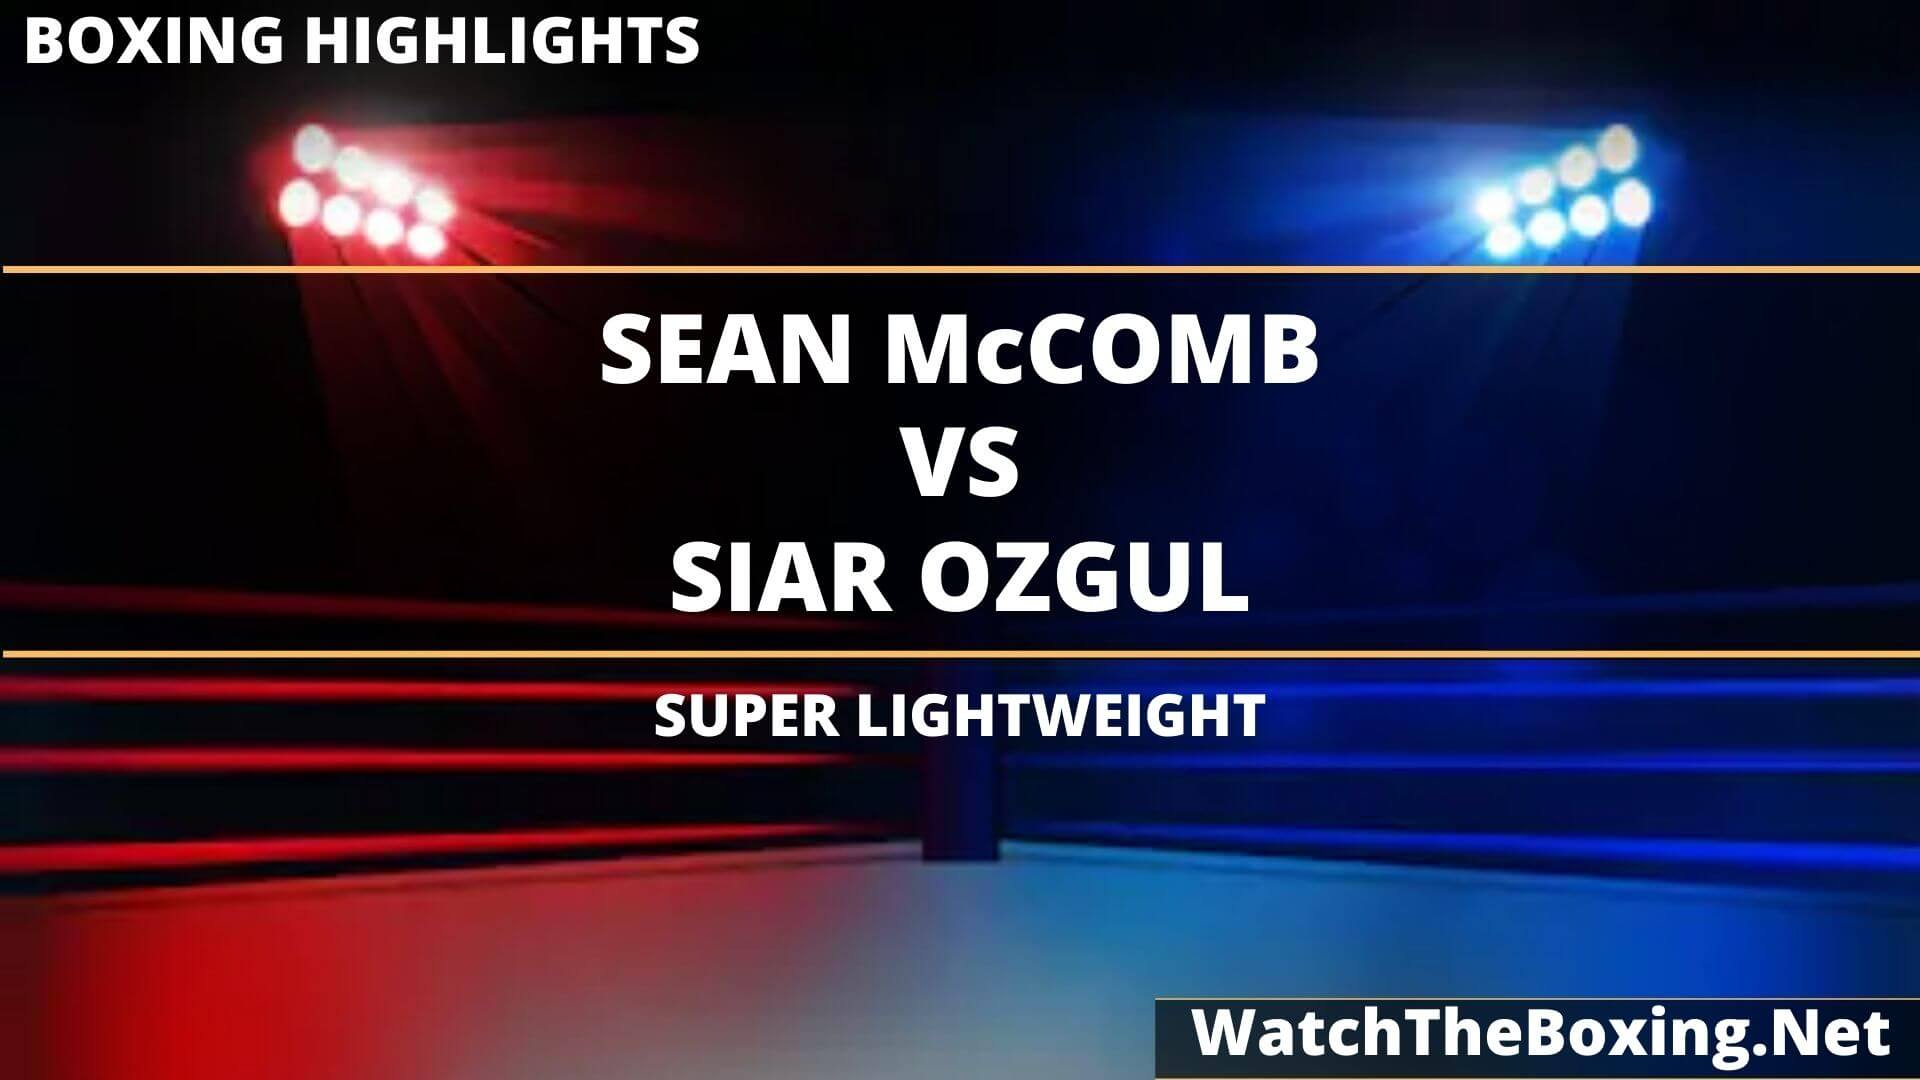 Sean McComb Vs Siar Ozgul Highlights 2020 Super Lightweight